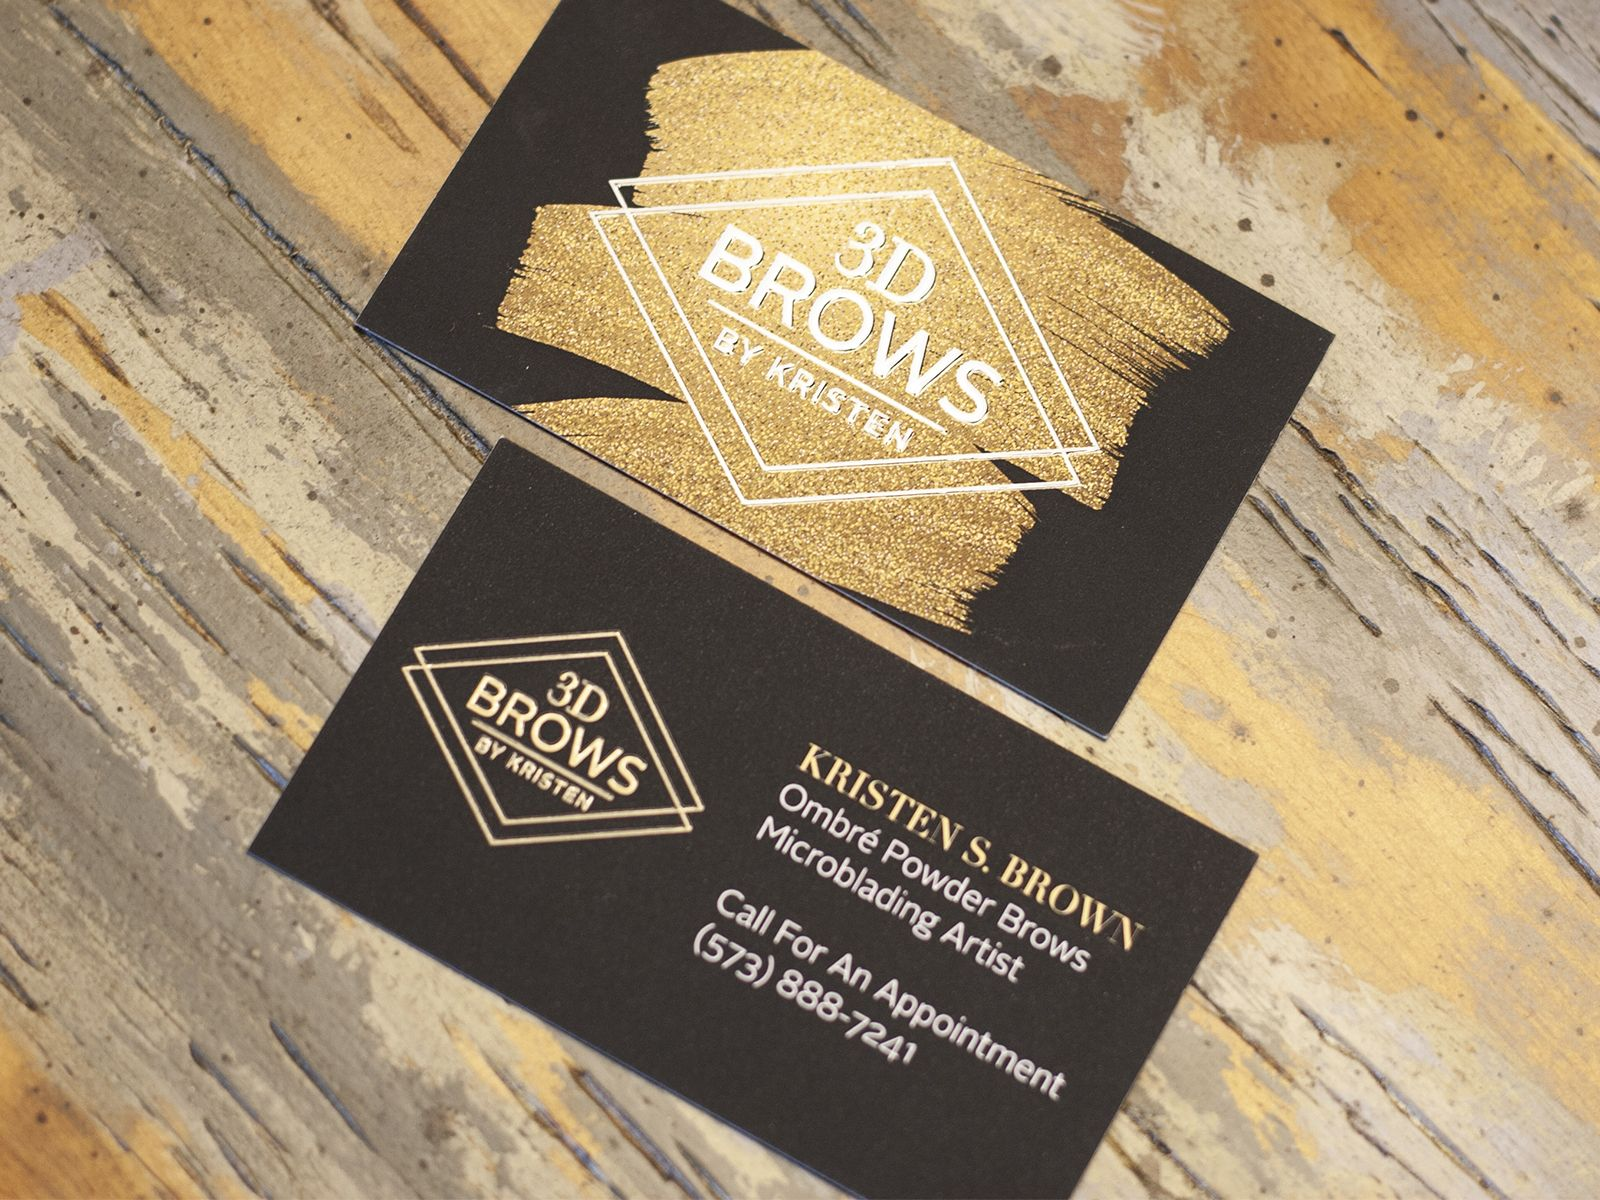 Raised Spot Uv Raised Foil Printing Gold Silver Holographic Foil Business Cards Embossed Business Cards Spot Uv Business Cards